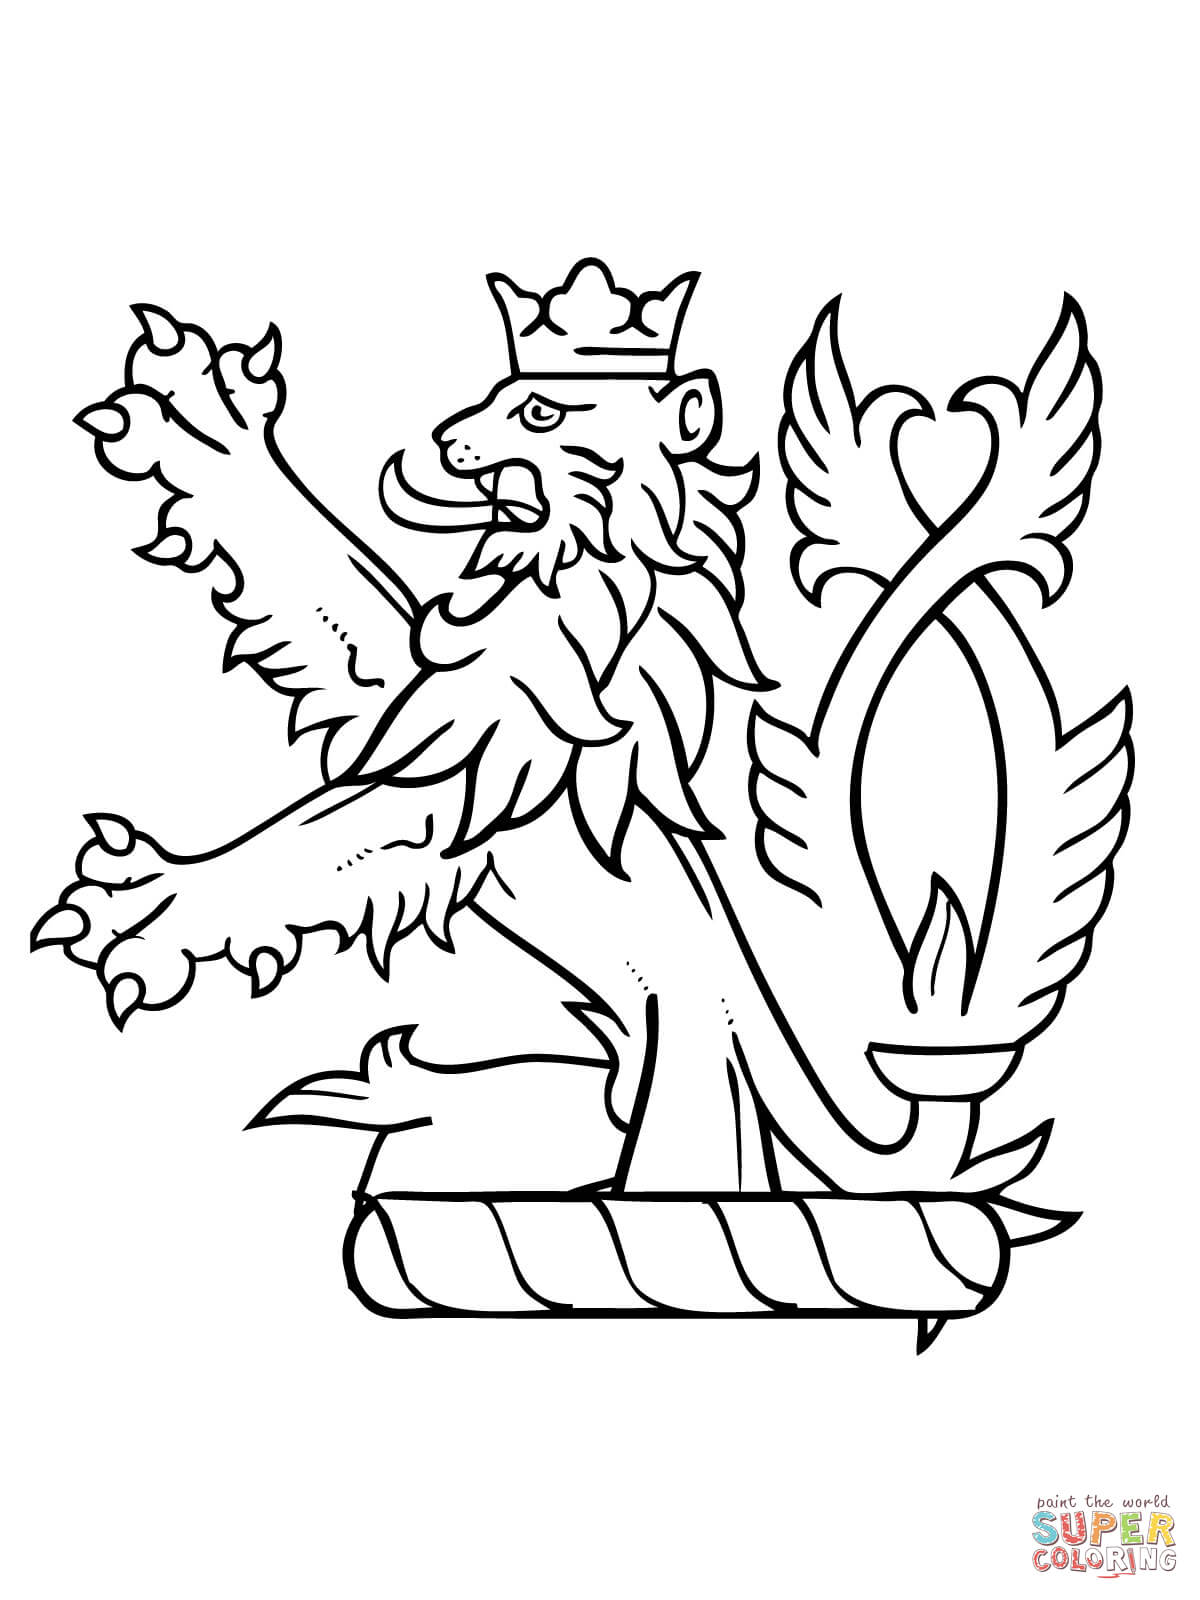 Outline Of Scotland Az Coloring Pages Scottish Coloring Pages